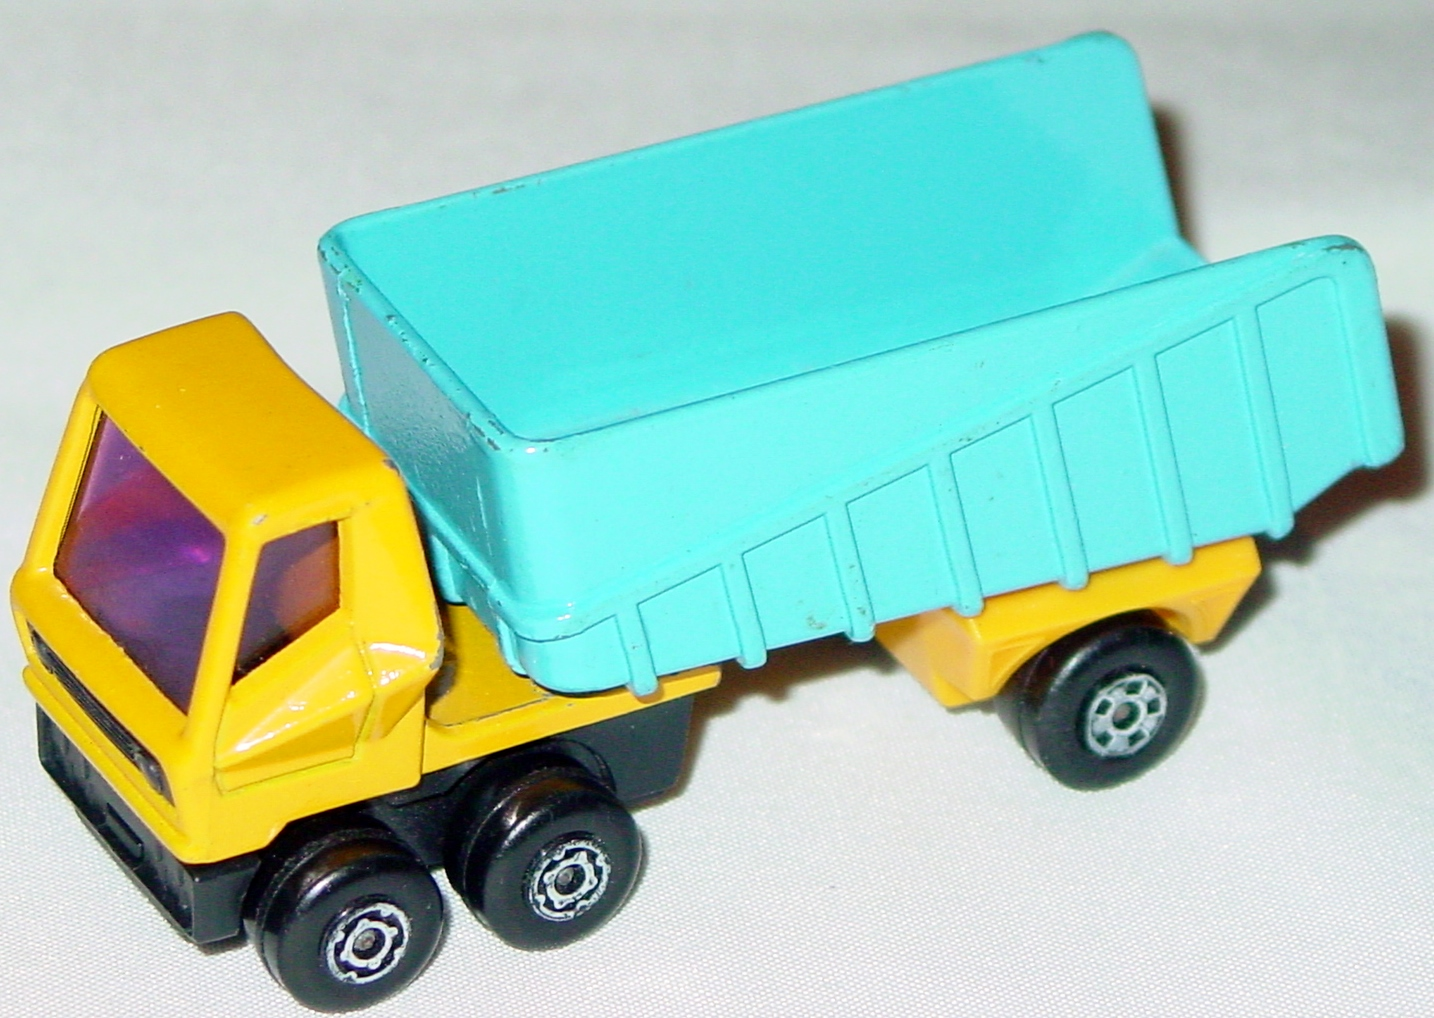 Lesney SuperFast 50 B 02 - Artic Truck org-yellow and blue